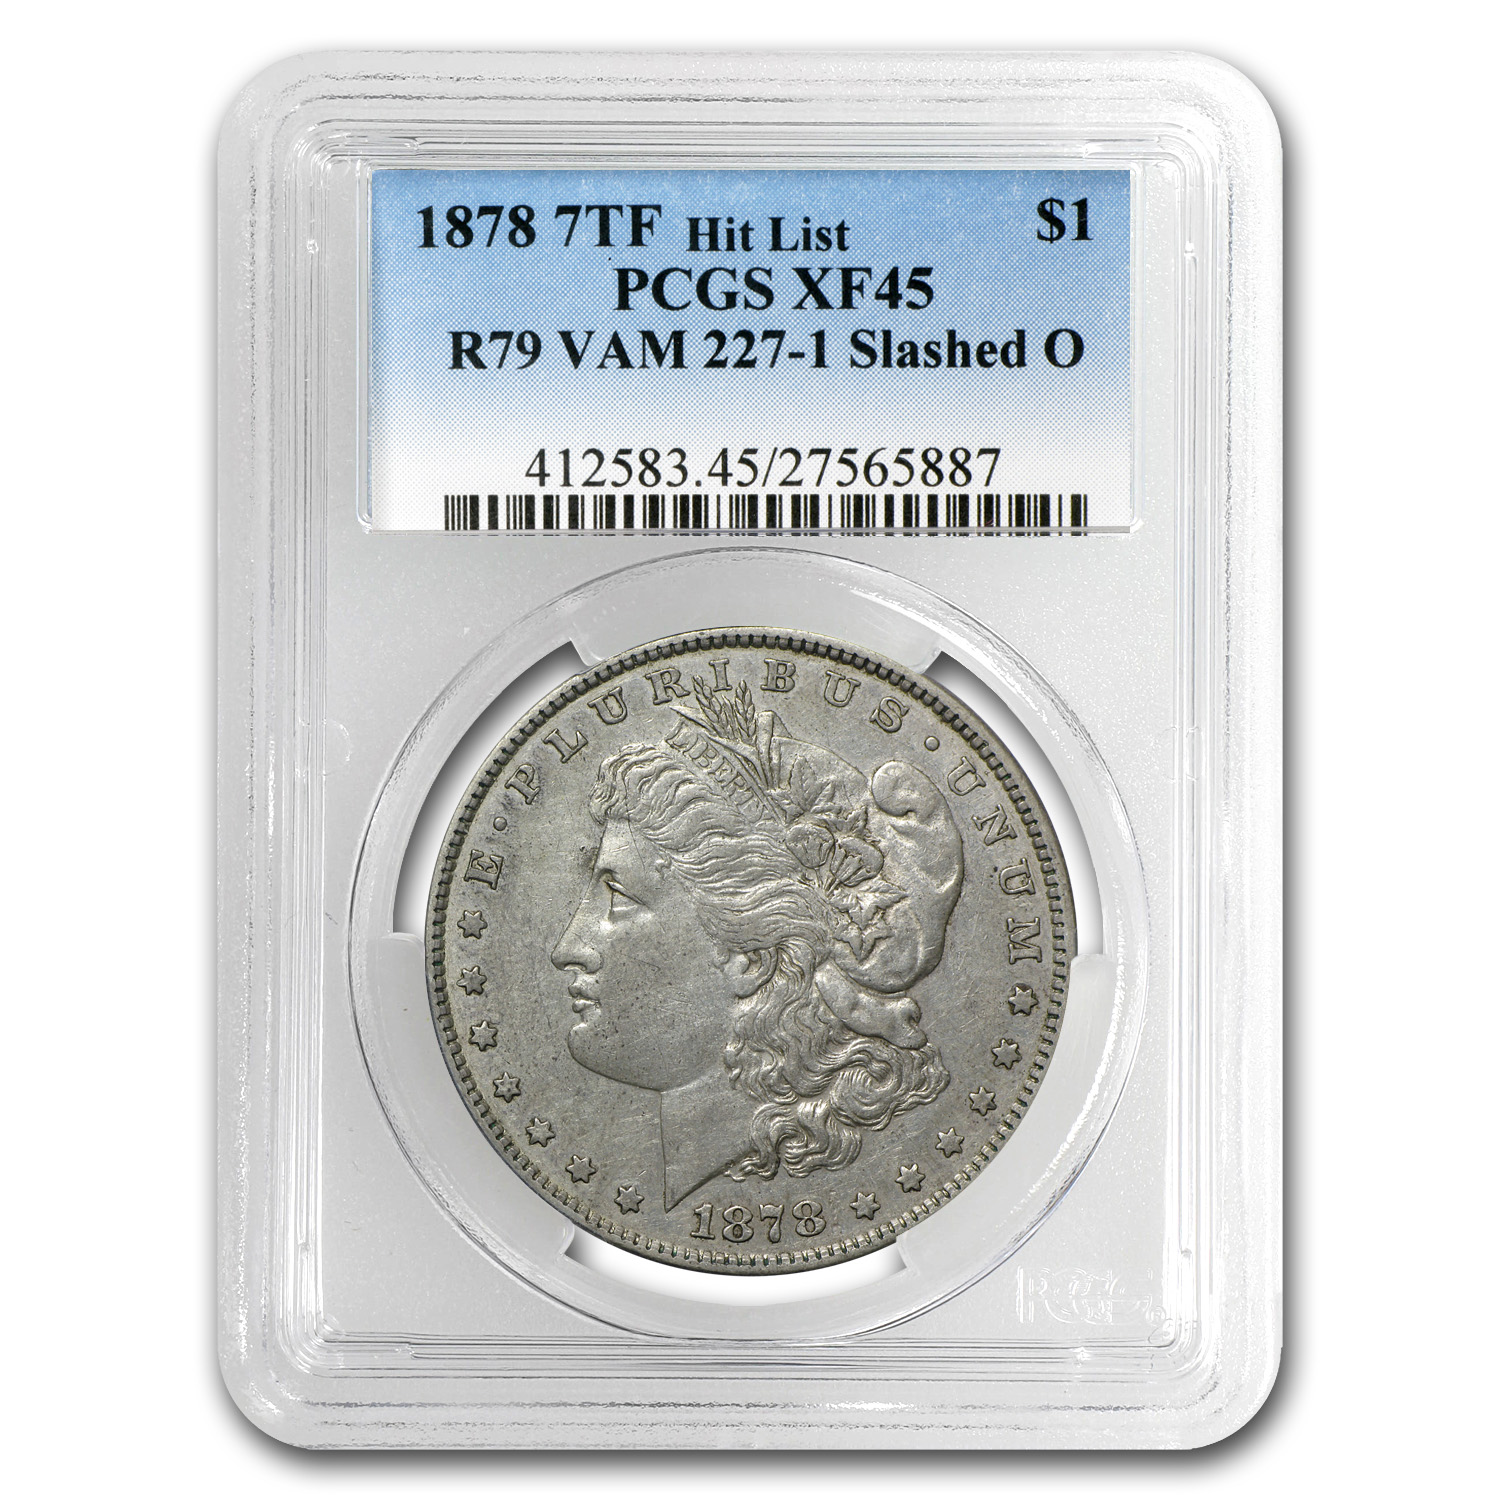 1878 Morgan Dollar - 7 TF Rev 79 XF-45 PCGS VAM-227-1 Slashed O